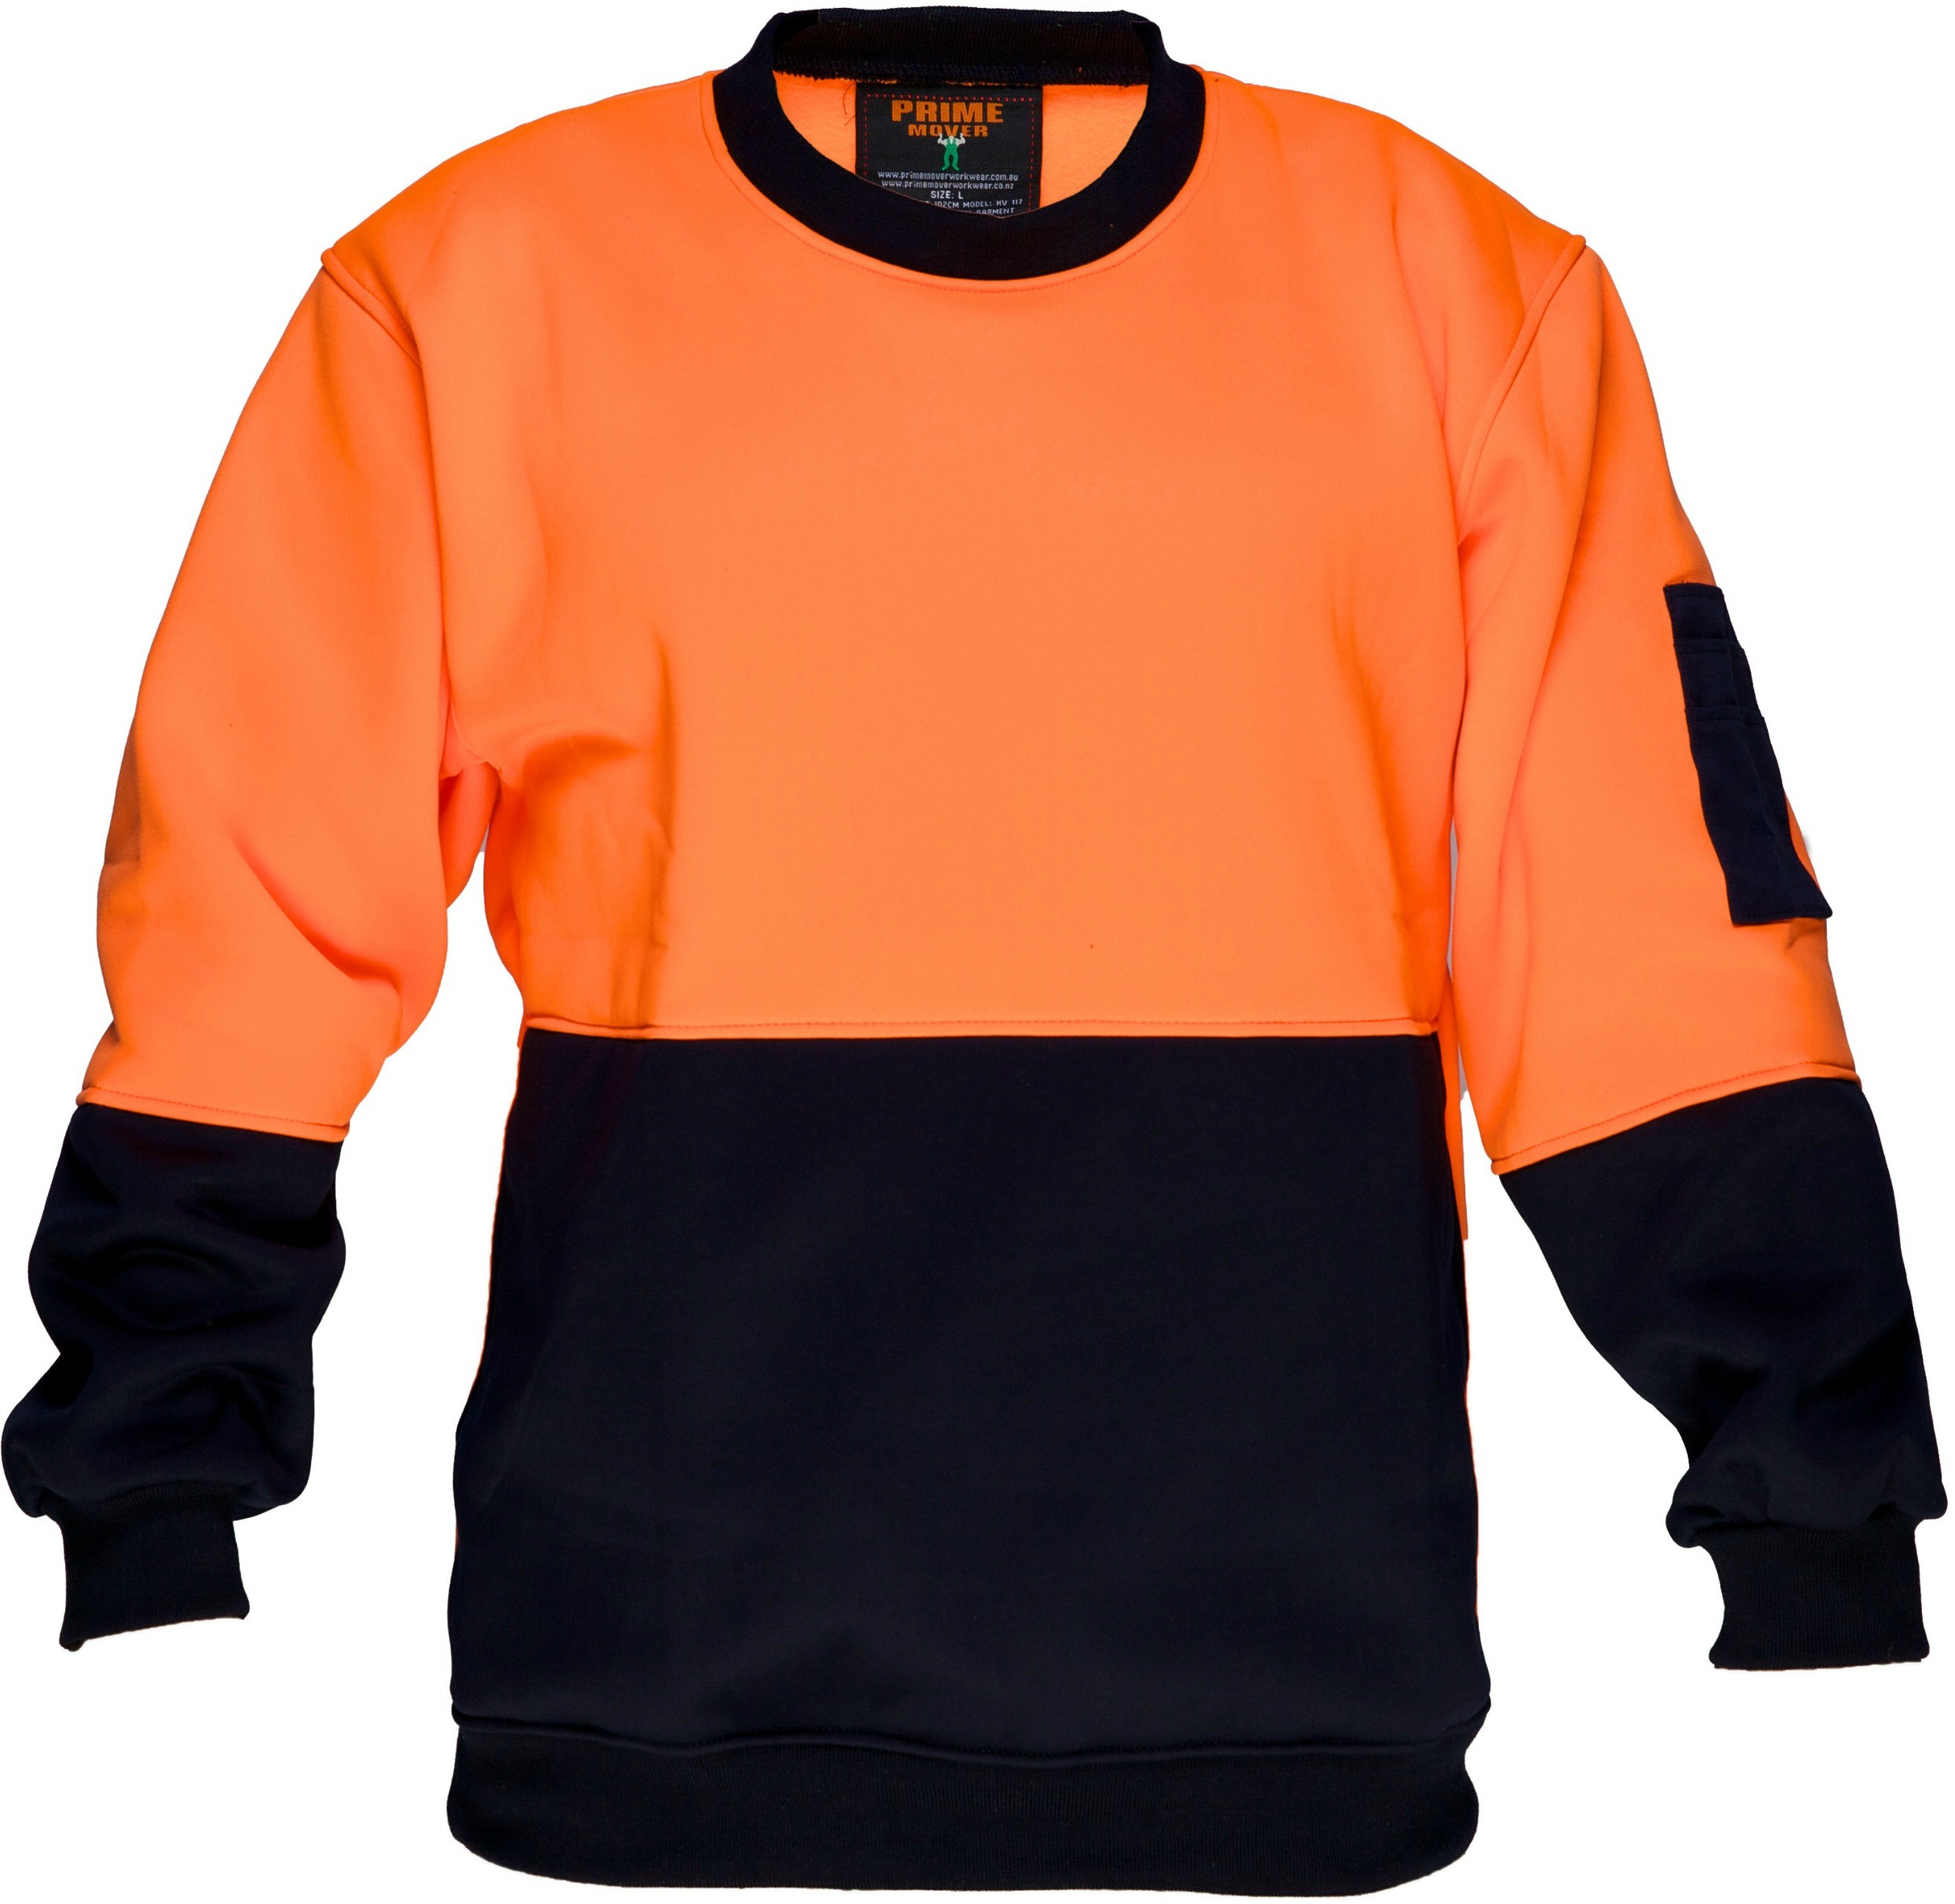 Crew Neck single brush fleecy jumper